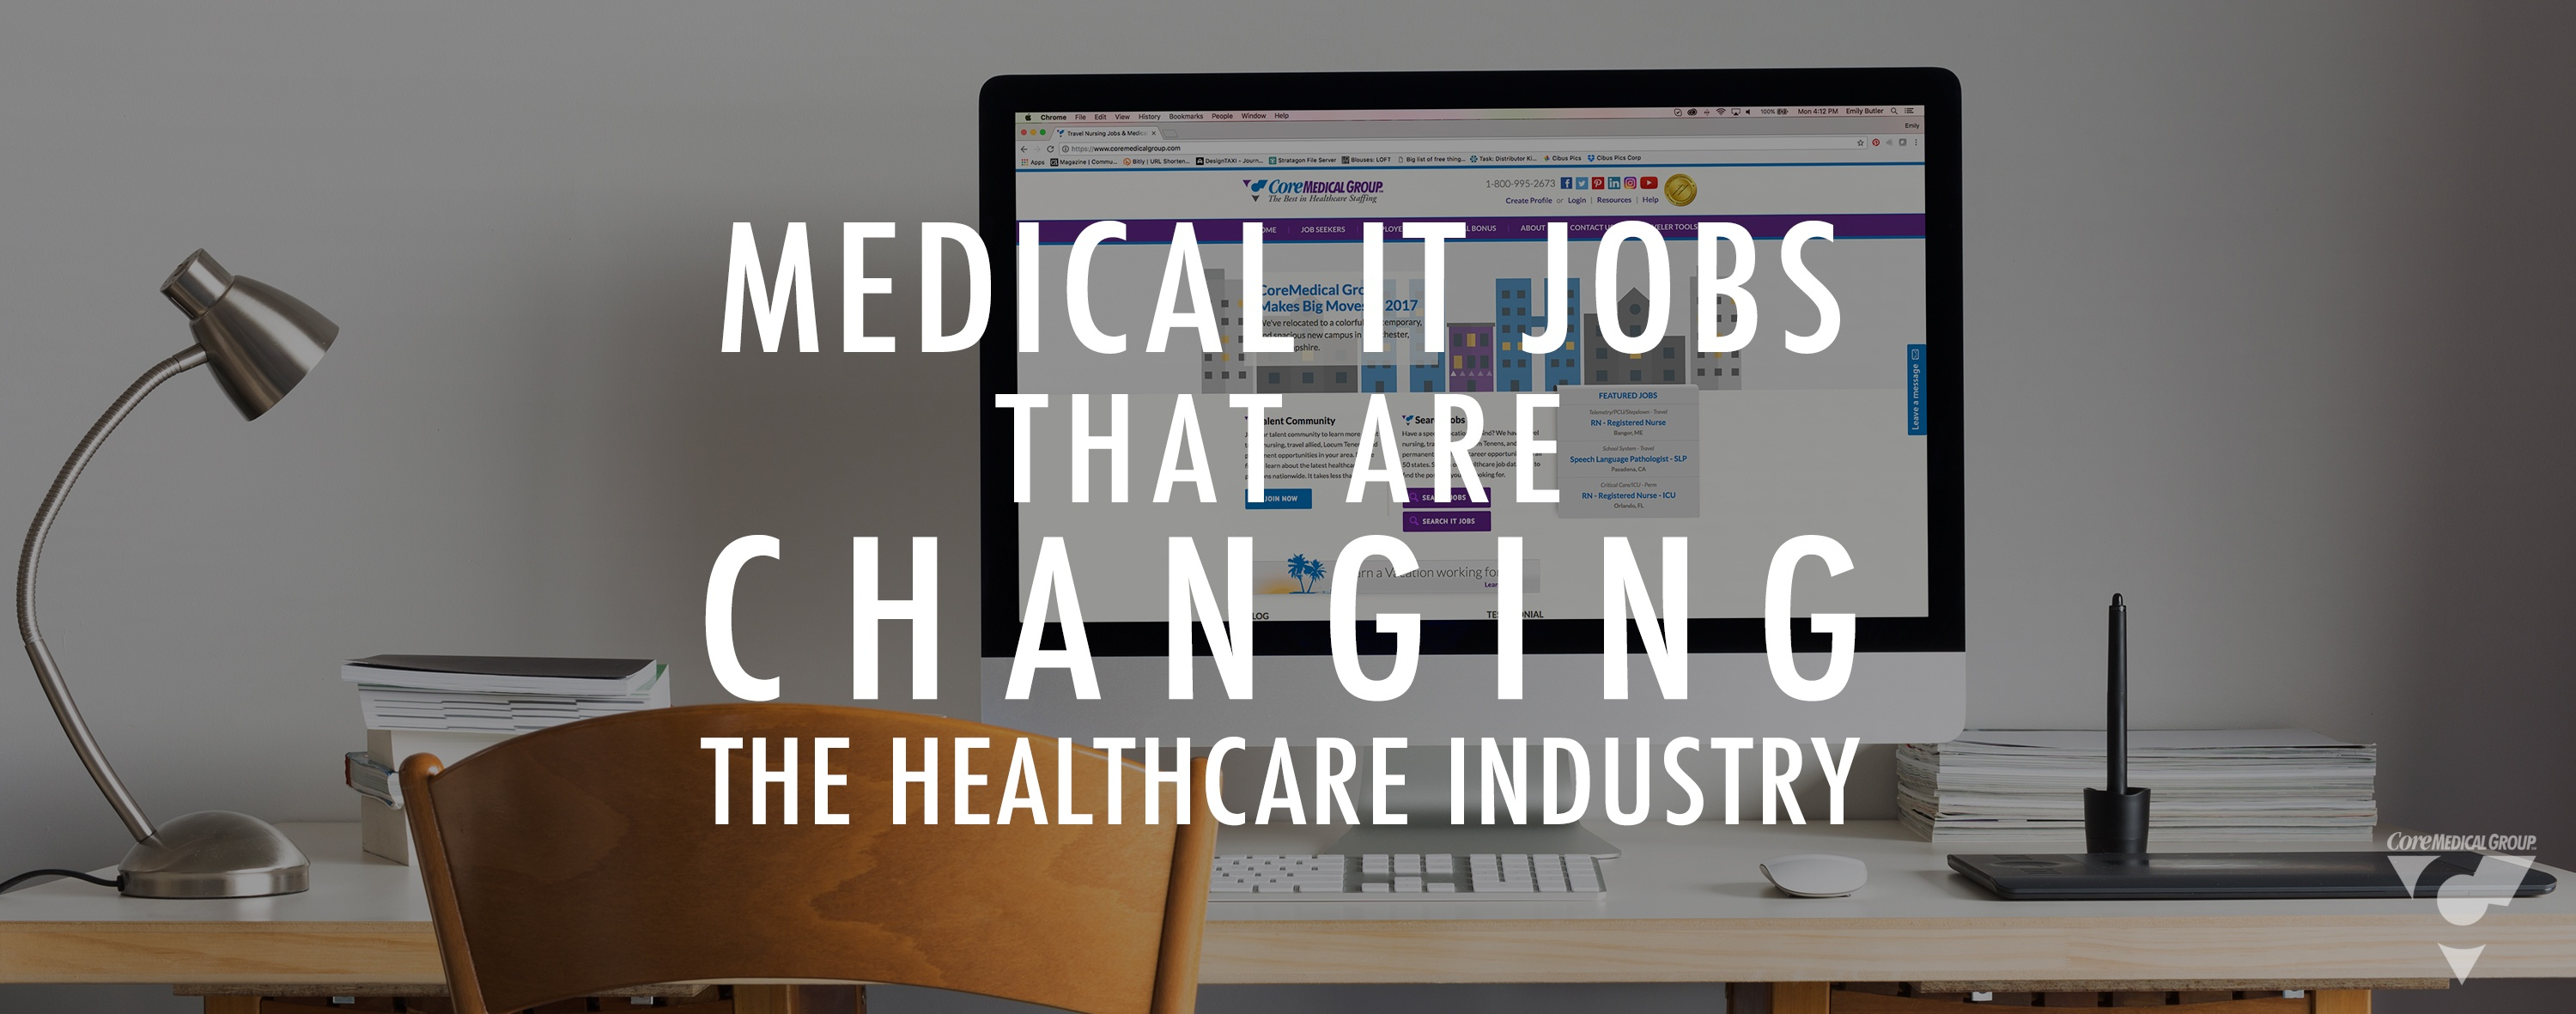 Medical IT Jobs That Are Changing the Healthcare Industry